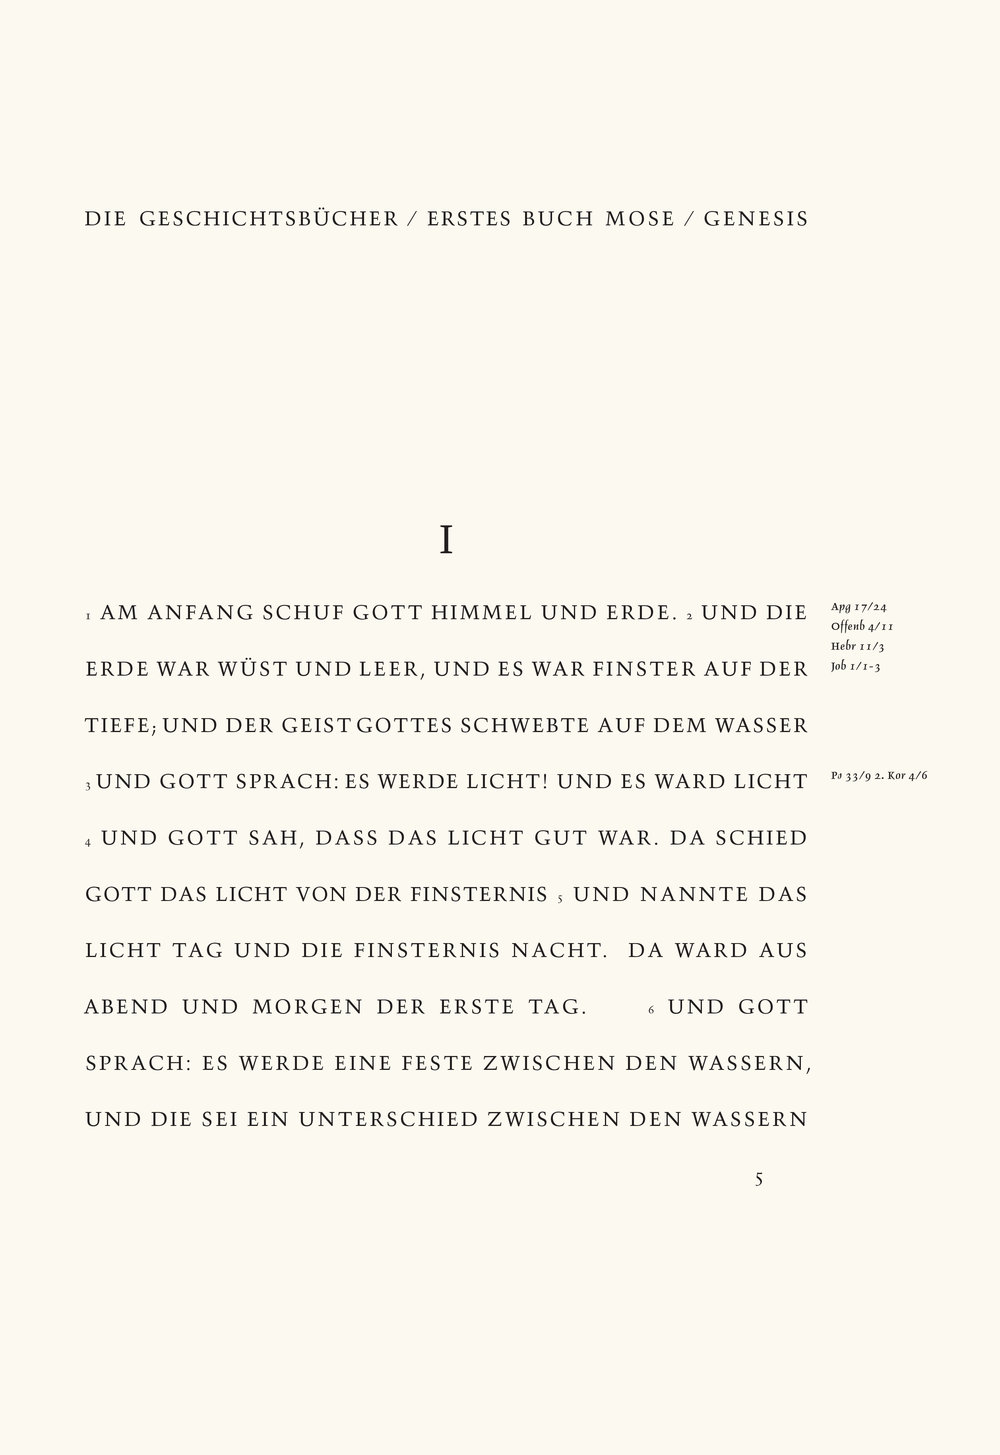 JOSEF KAUFER  Munich, 1955  Trump Mediaeval  21.3 X 31 cm  Letterpress  Liber Librorum Collection